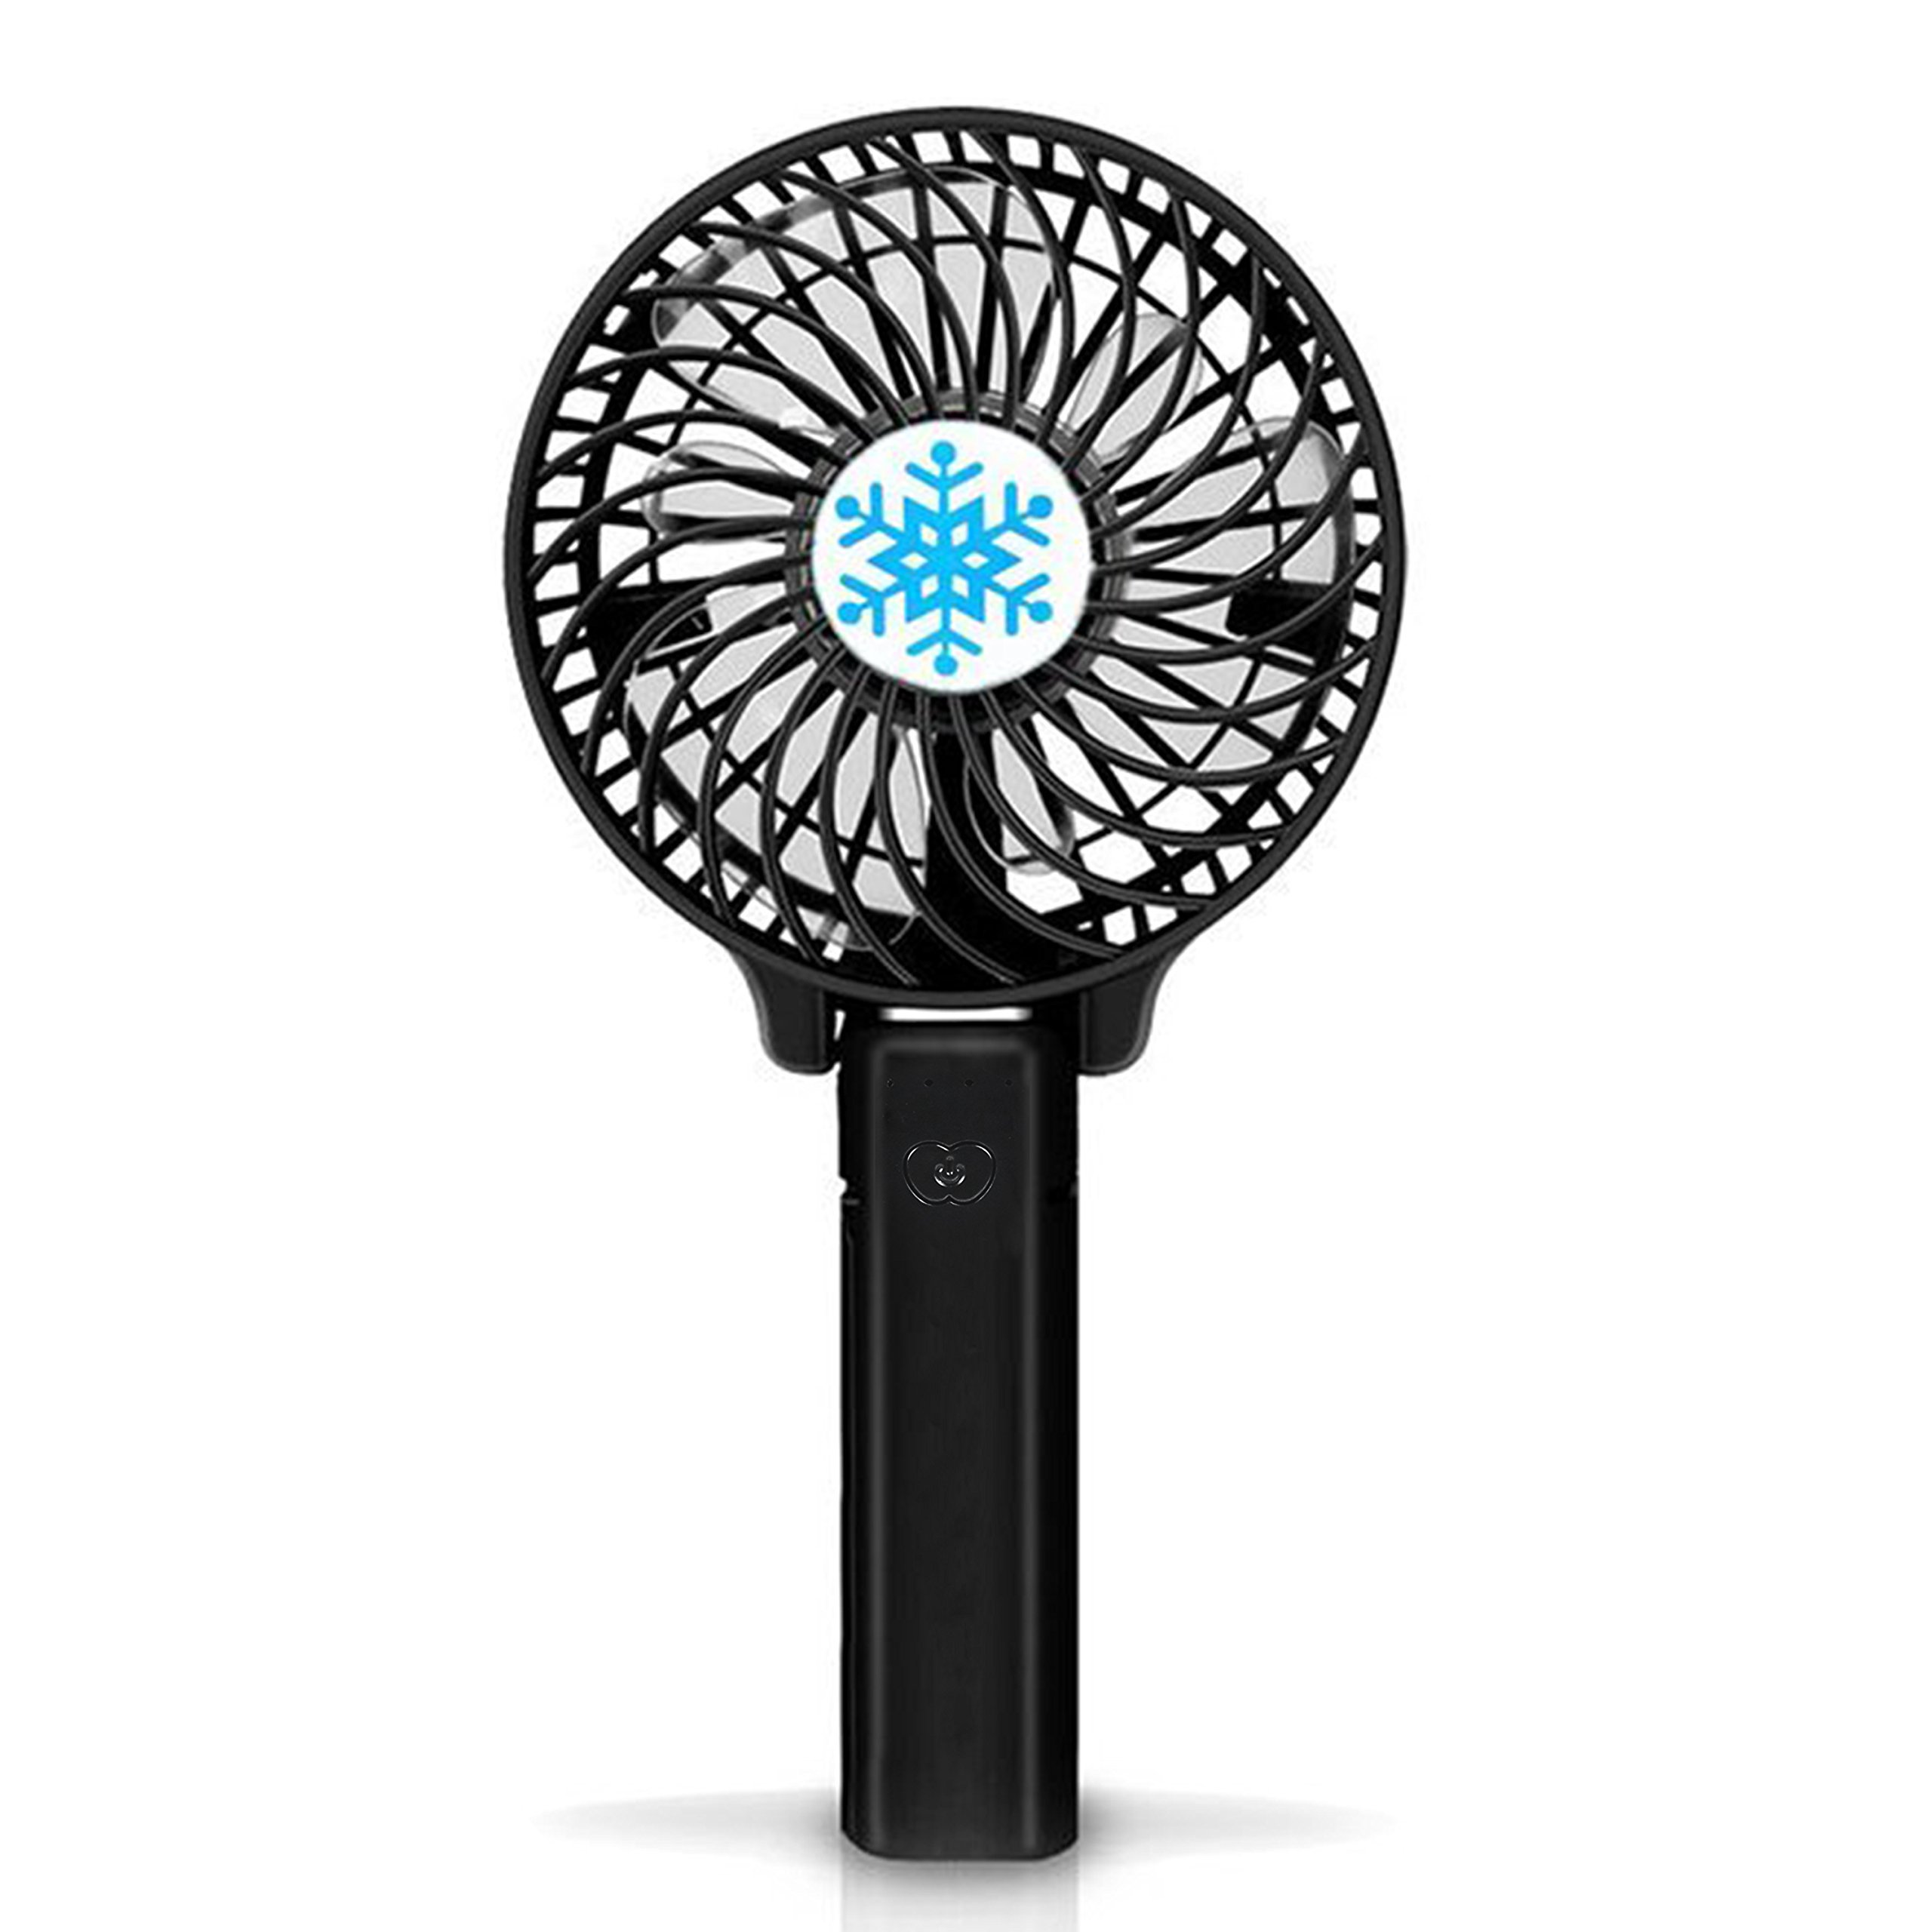 Mini Portable Fan with LED Light,Collapsible Personal Fan USB Rechargeable Battery,18650 Lithium Rechargeable Battery,Lightweight Handheld Cooling Fan,Adapt to Outdoor sports,shopping,travel,office by YONGYUAN (Image #1)